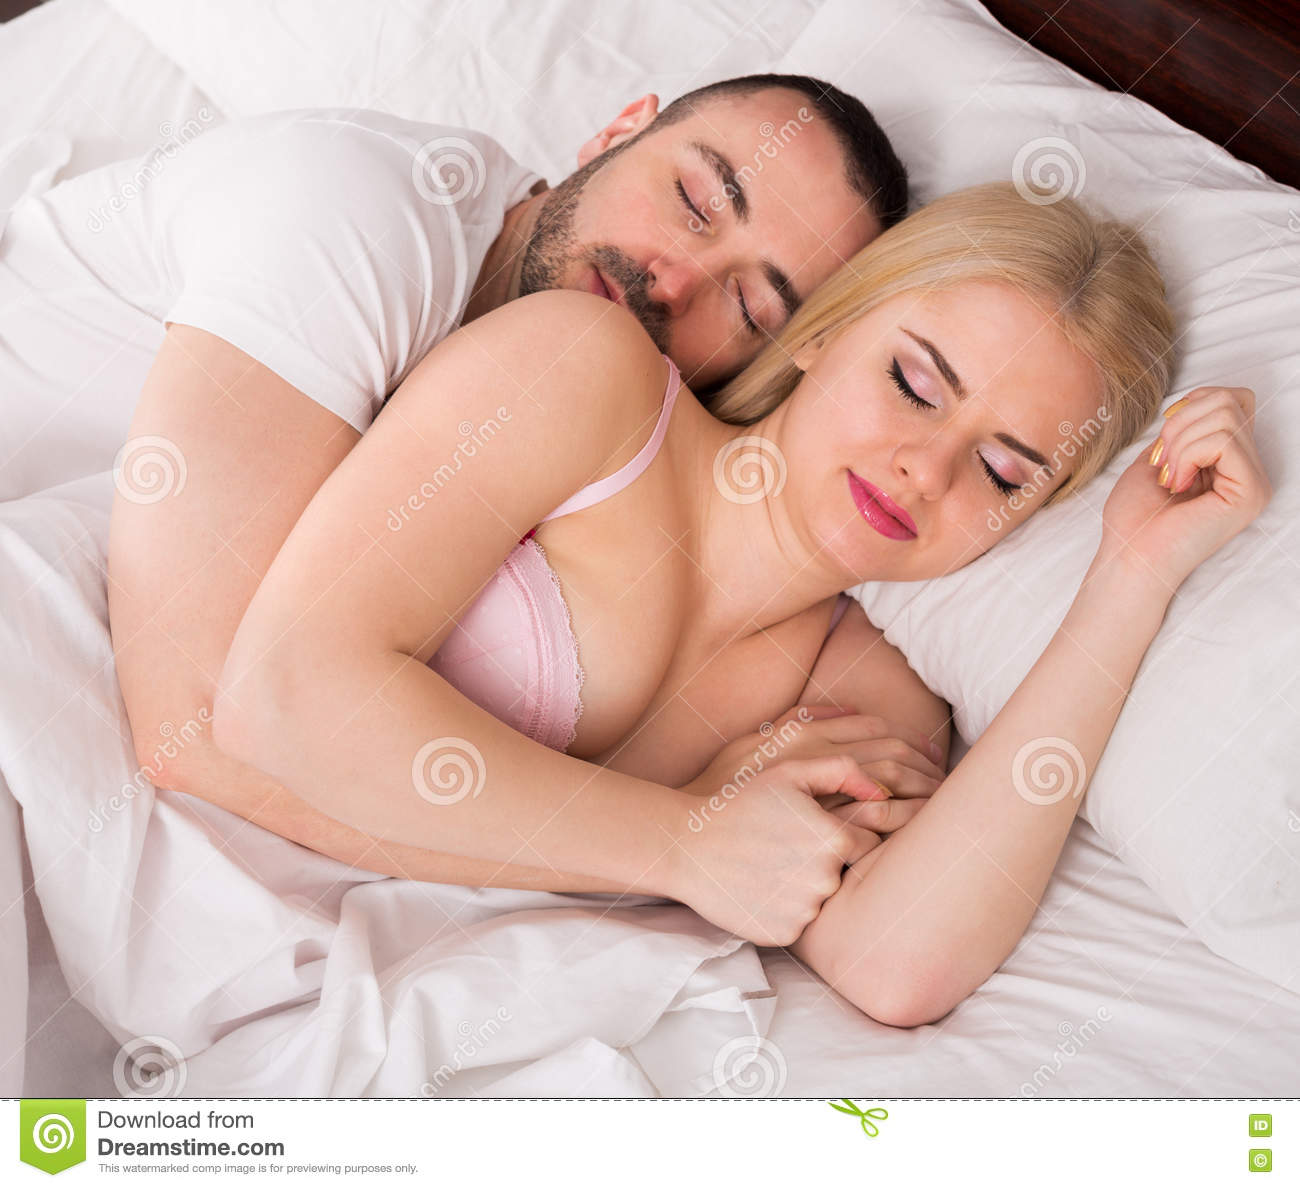 Man and blond woman sleeping